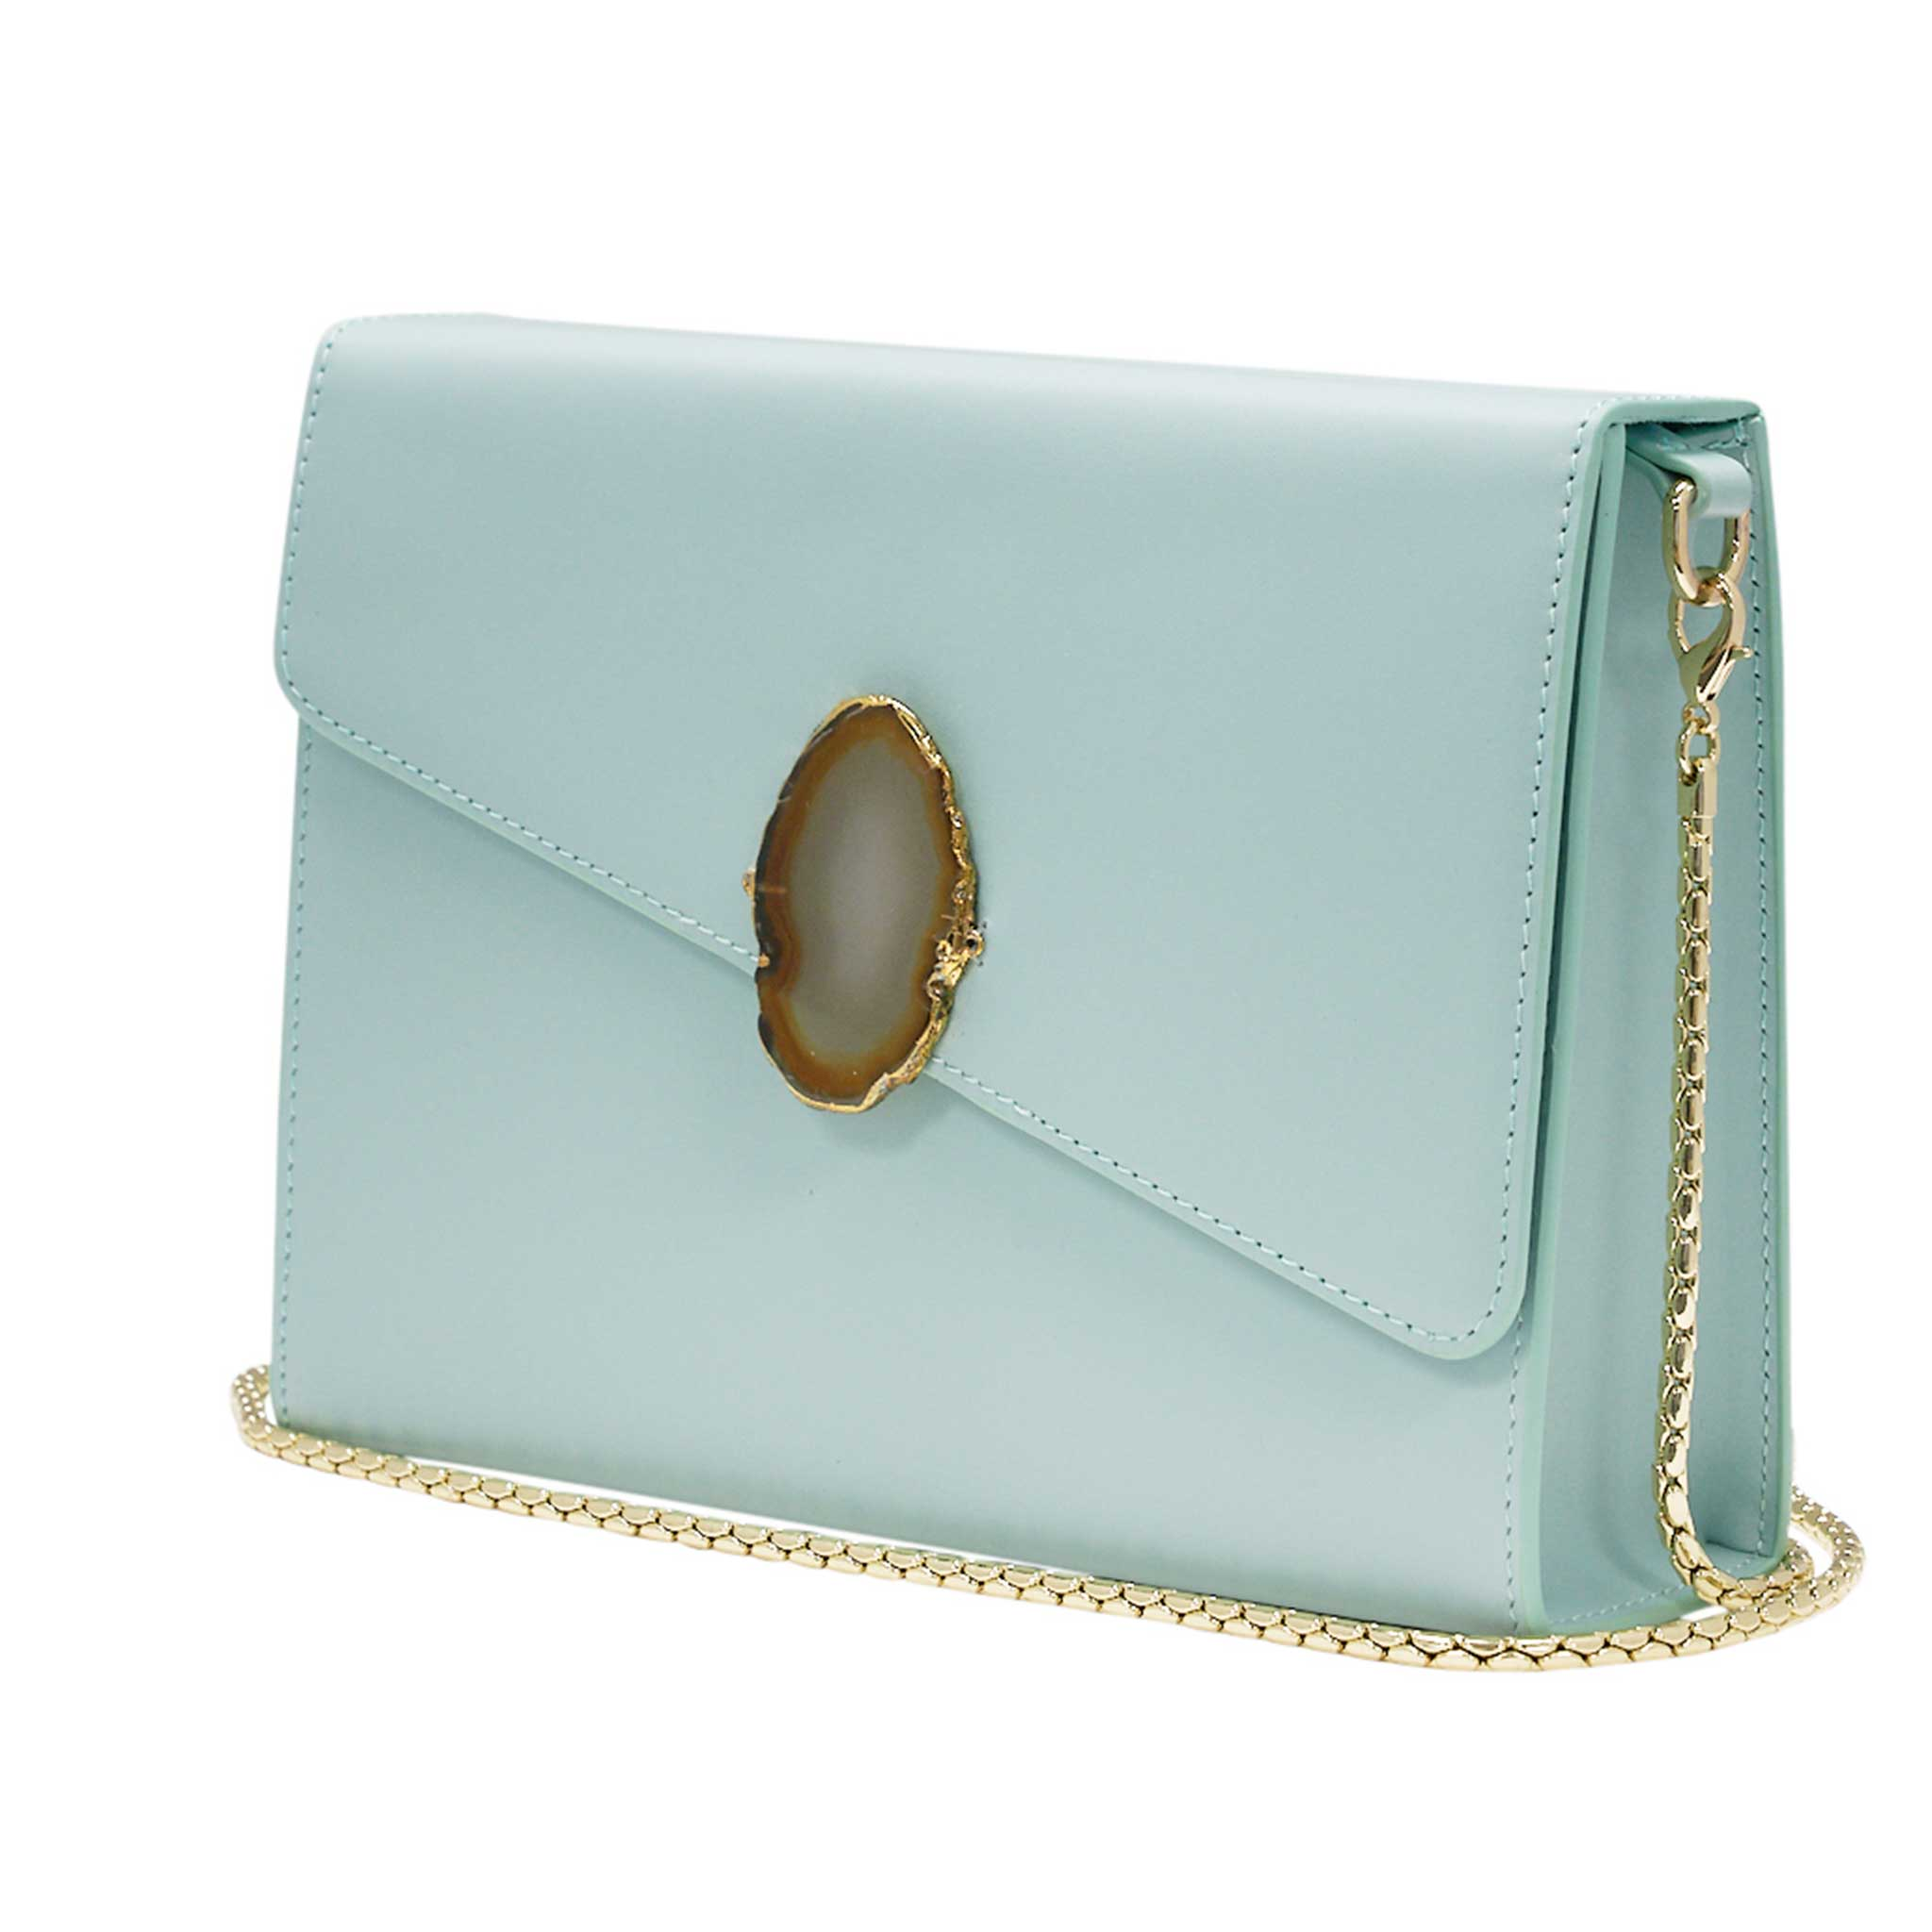 LOVED BAG - MOONSTONE WHITE LEATHER WITH YELLOW AGATE - 1.02.001.043